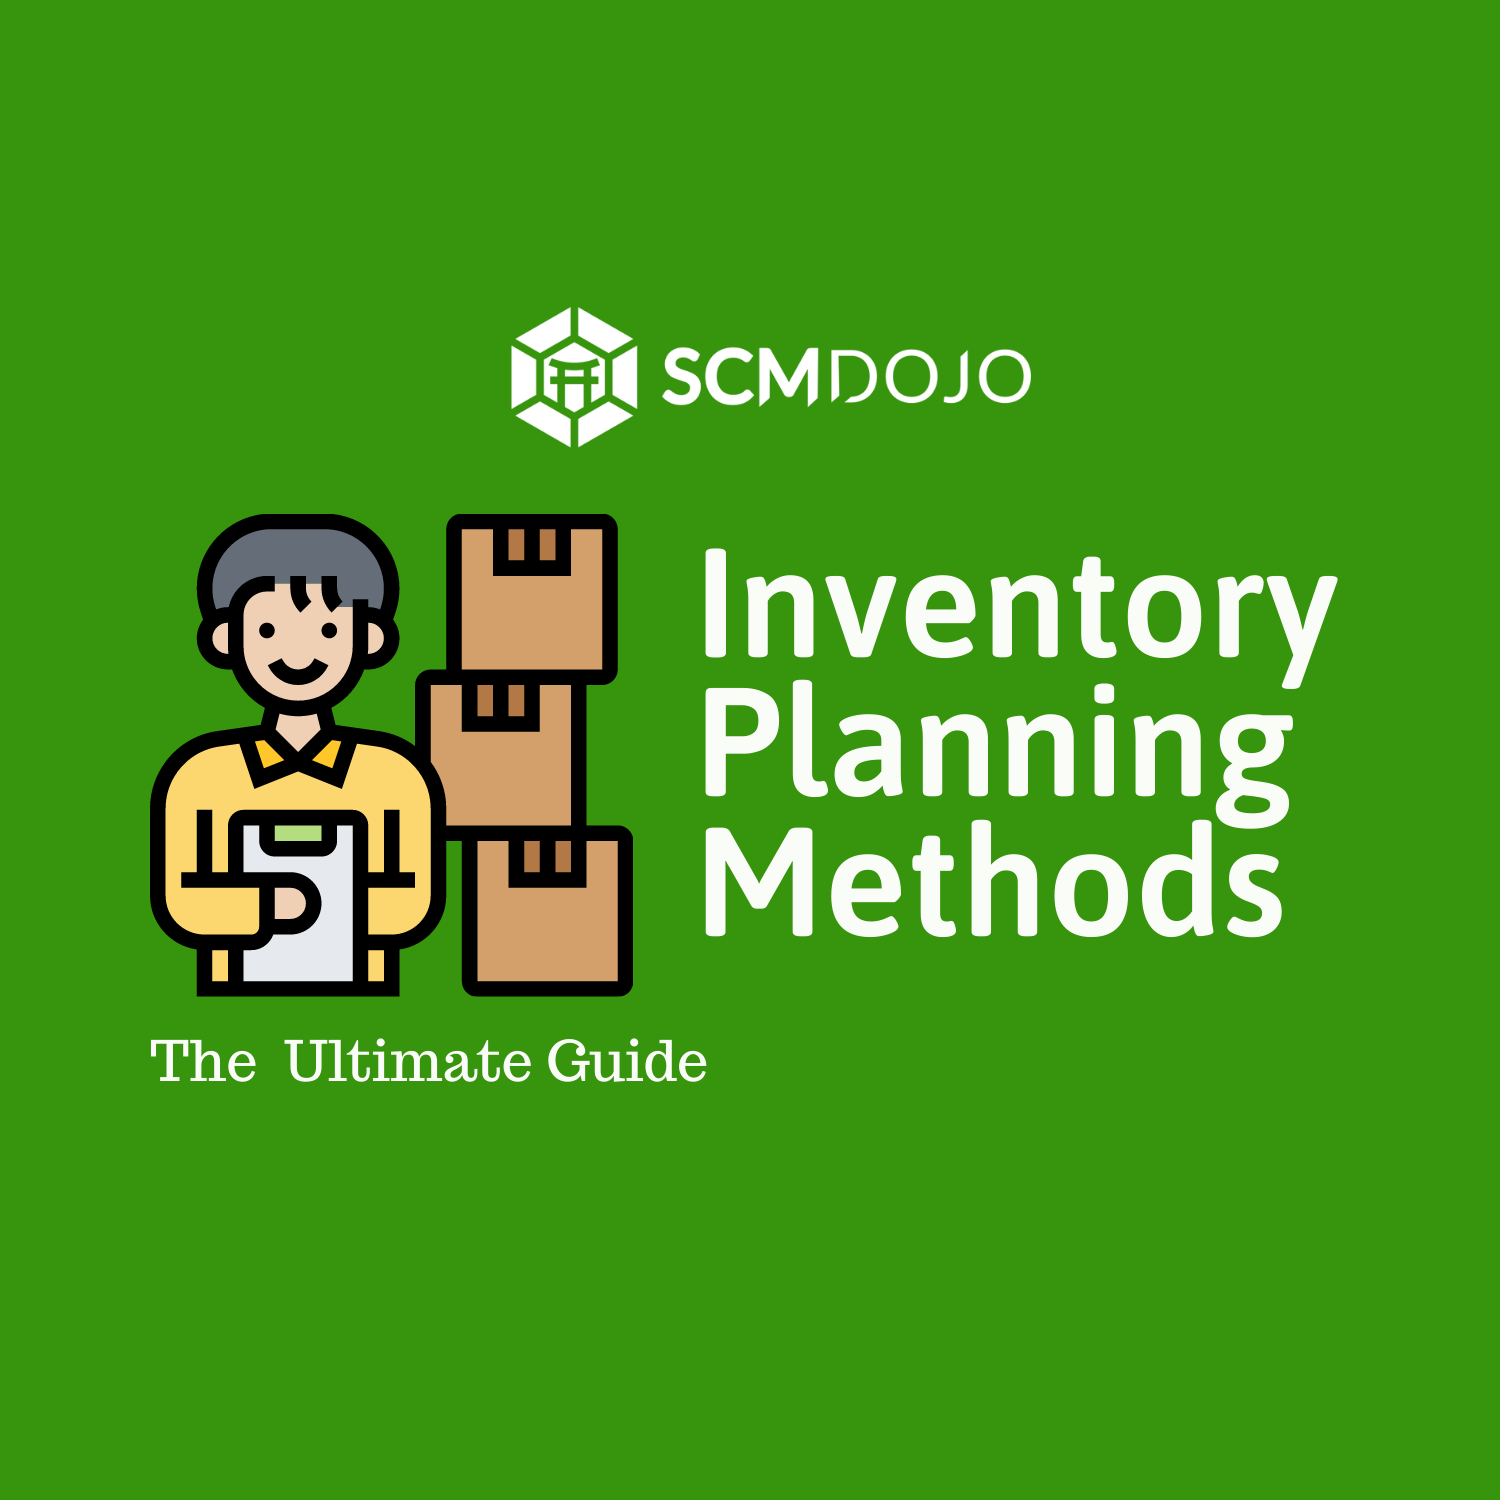 The Ultimate Guide to Inventory Planning Methods